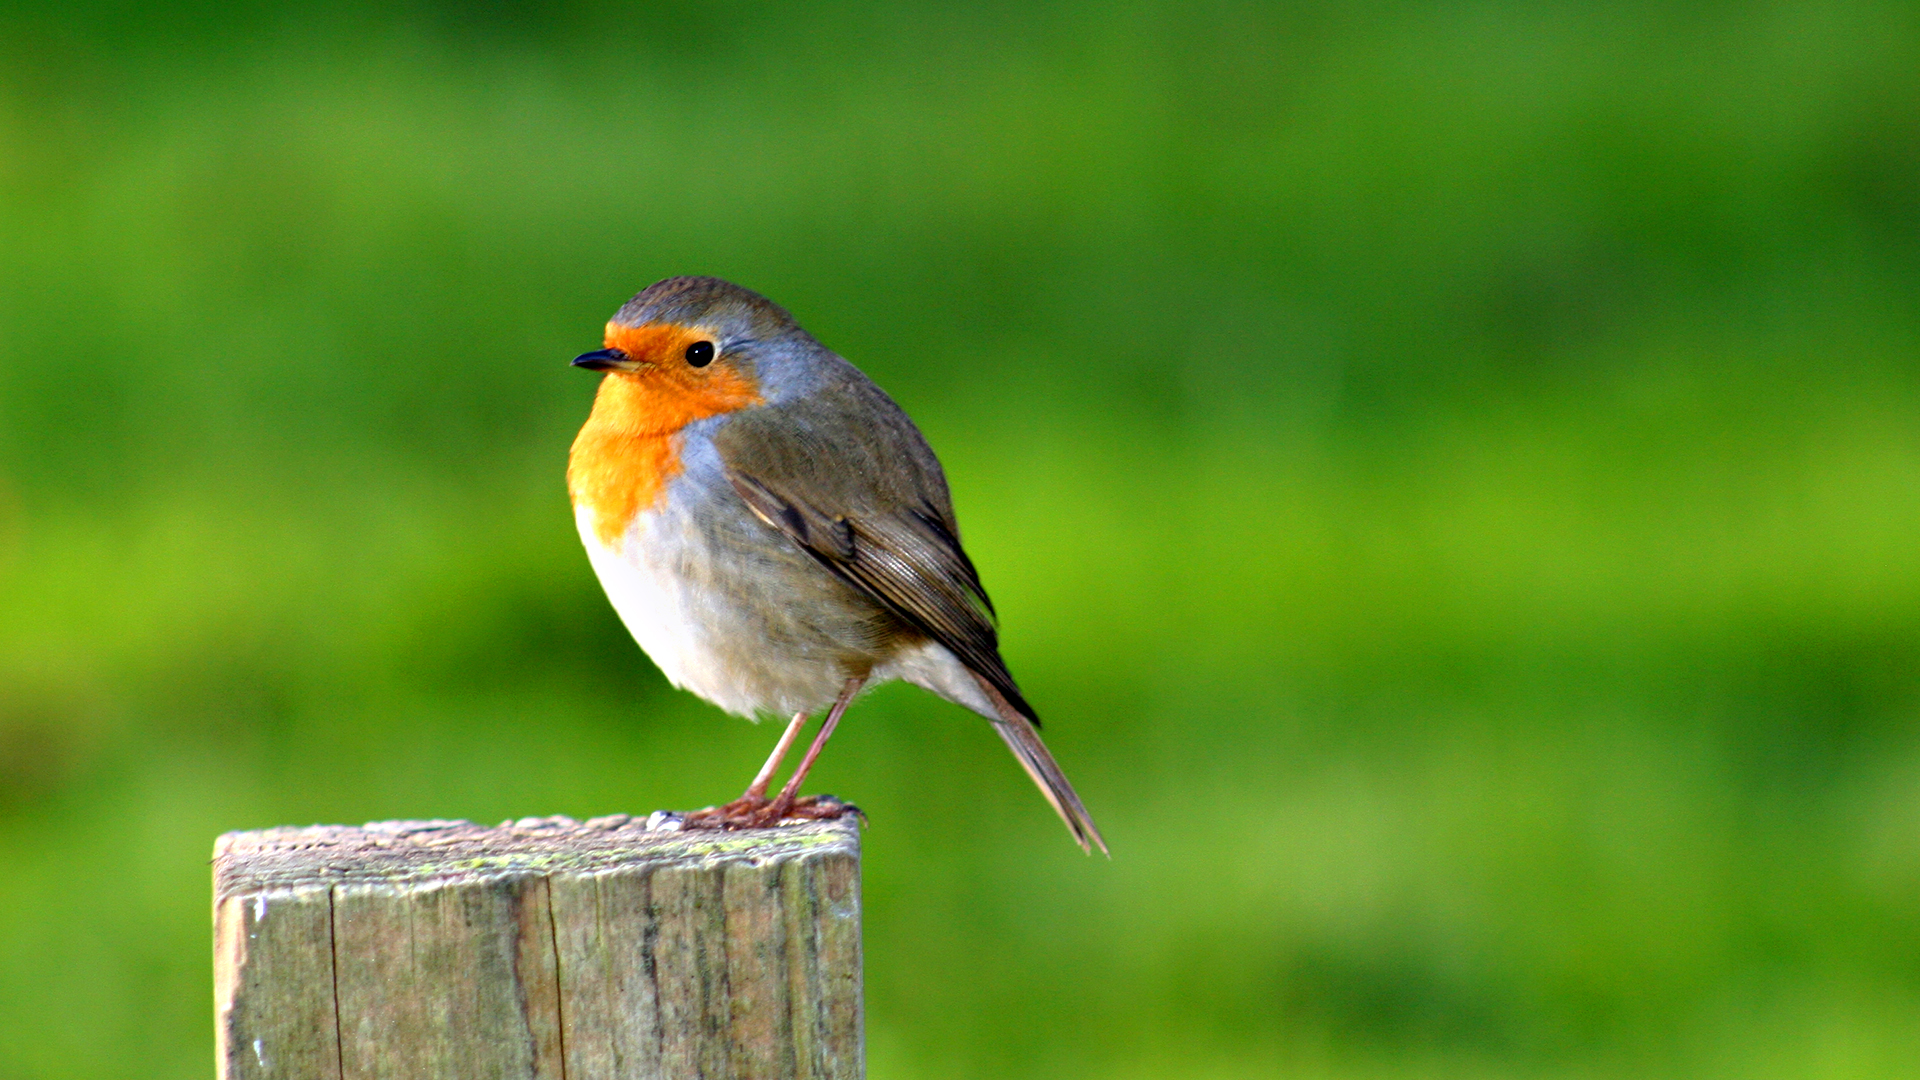 Bird Desktop Wallpapers FREE on Latorocom 1920x1080